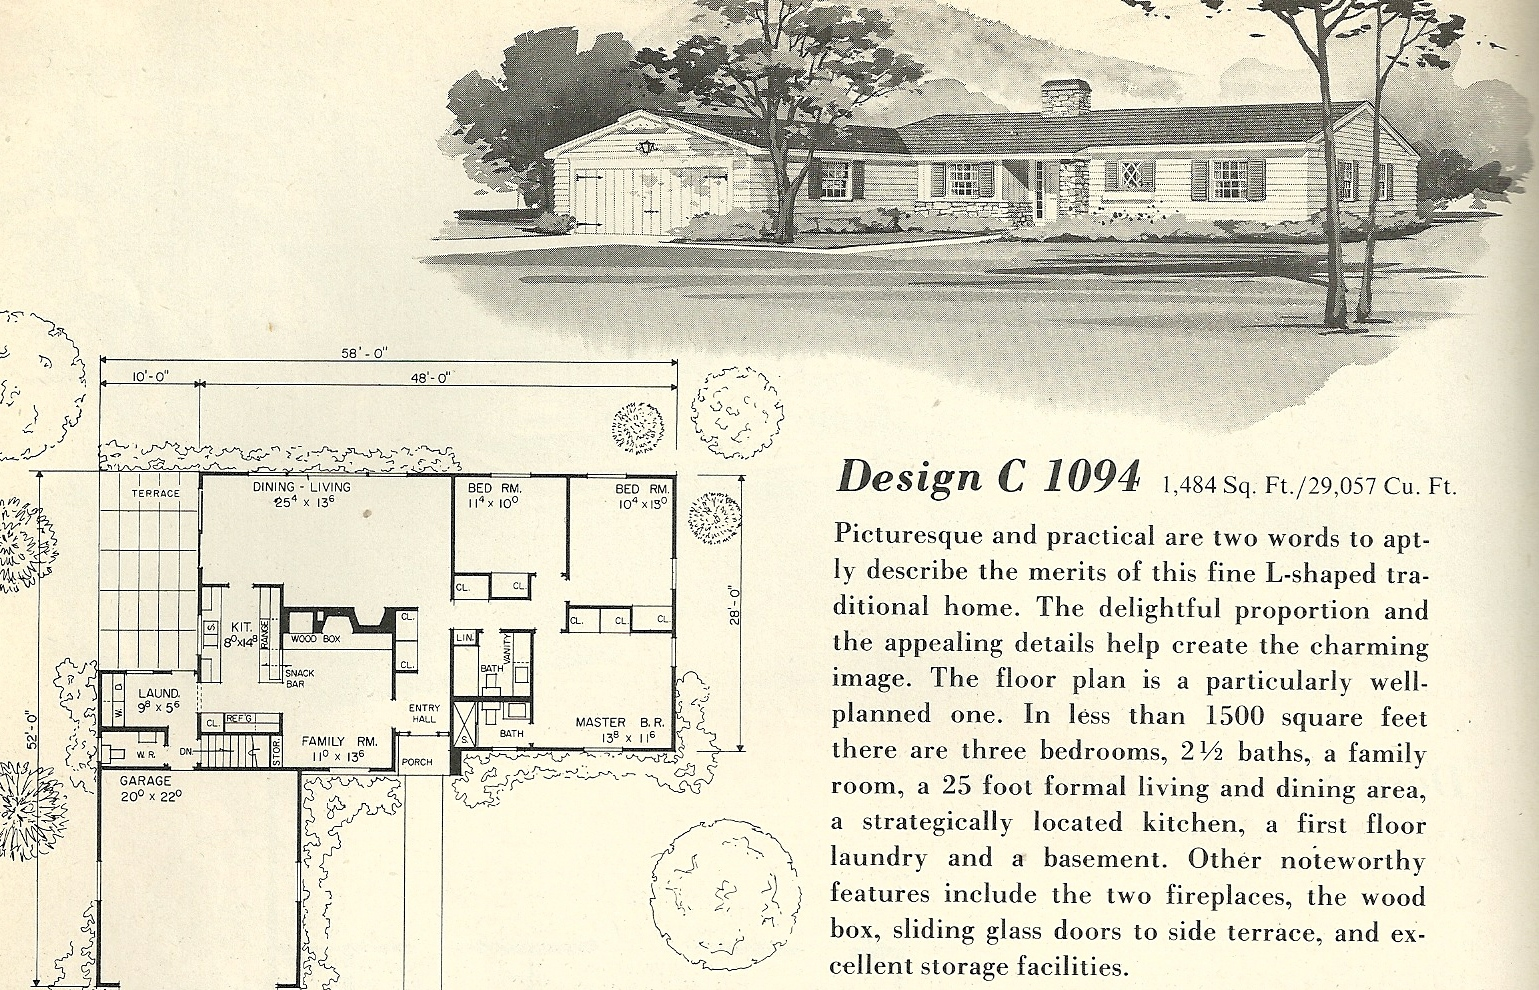 Vintage house plans 1094 antique alter ego for New old home plans